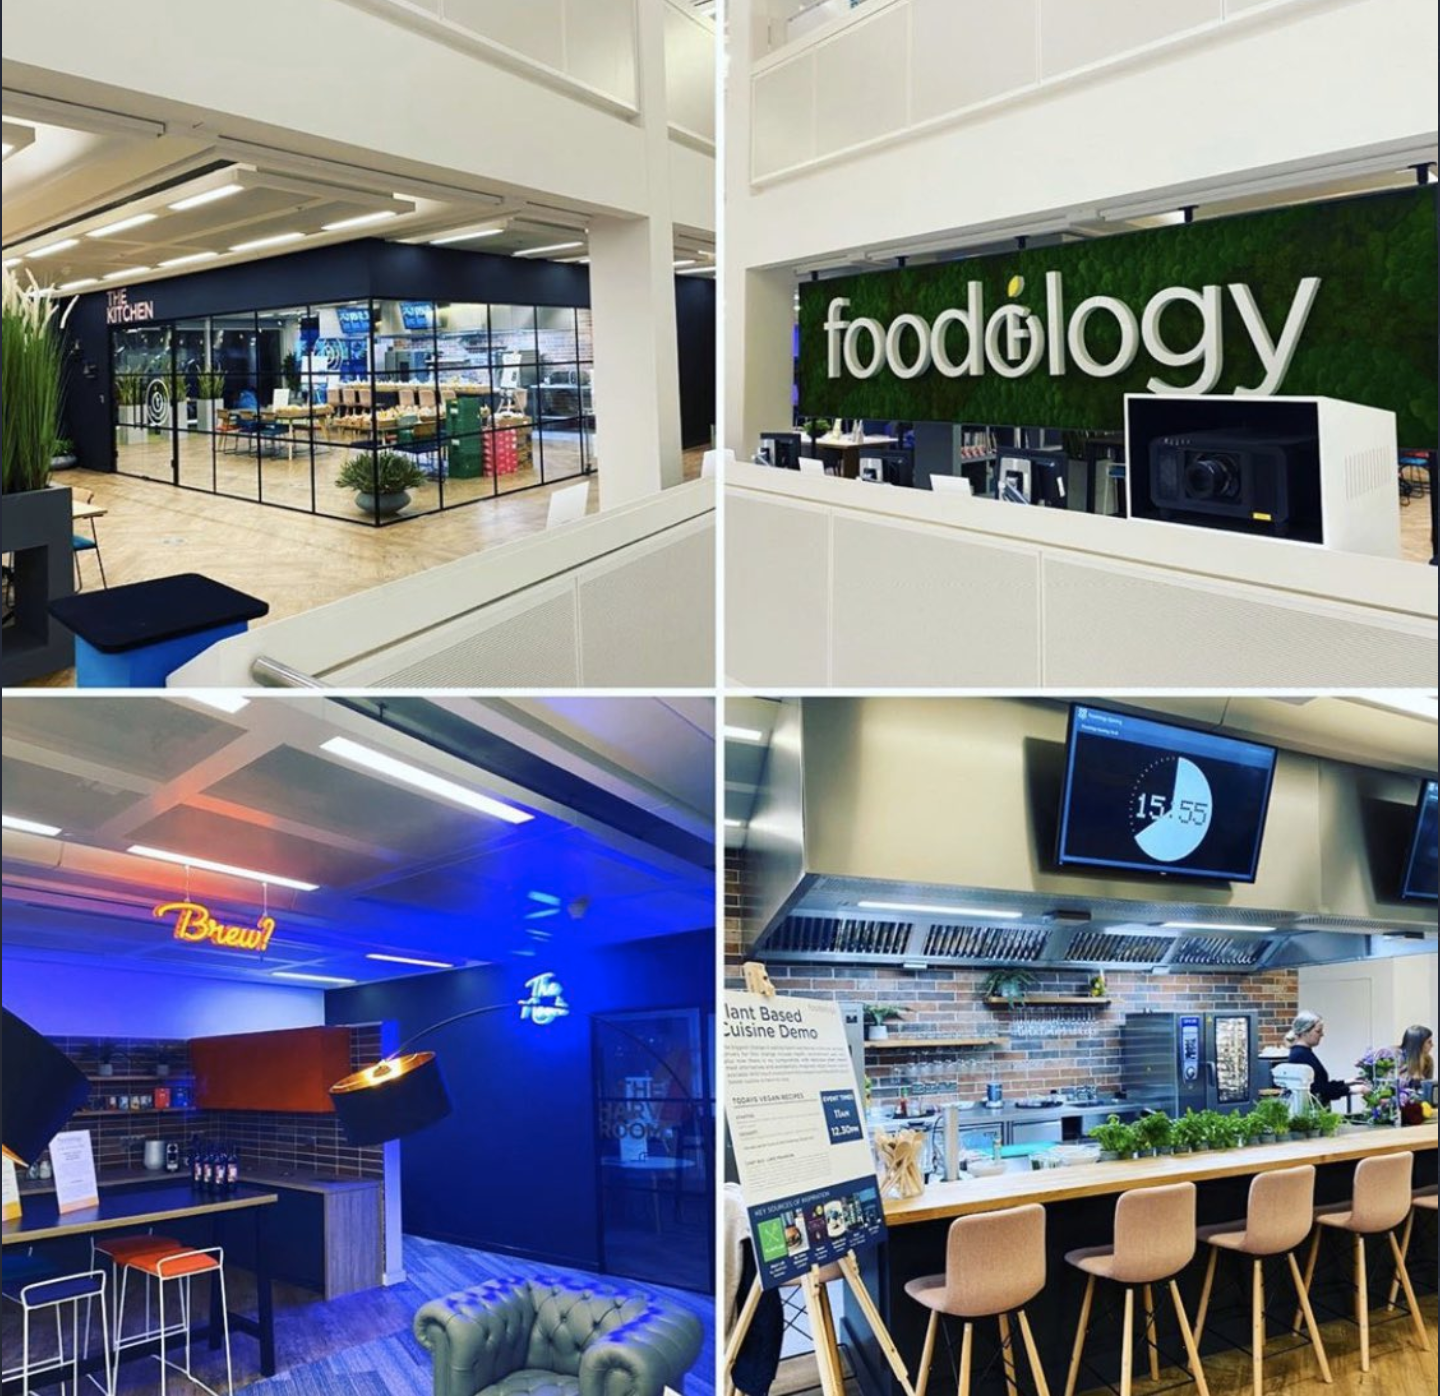 Images from the Foodology by Co-op Launch including grass walls with the logo, the inside of the glass cube and the kitchen